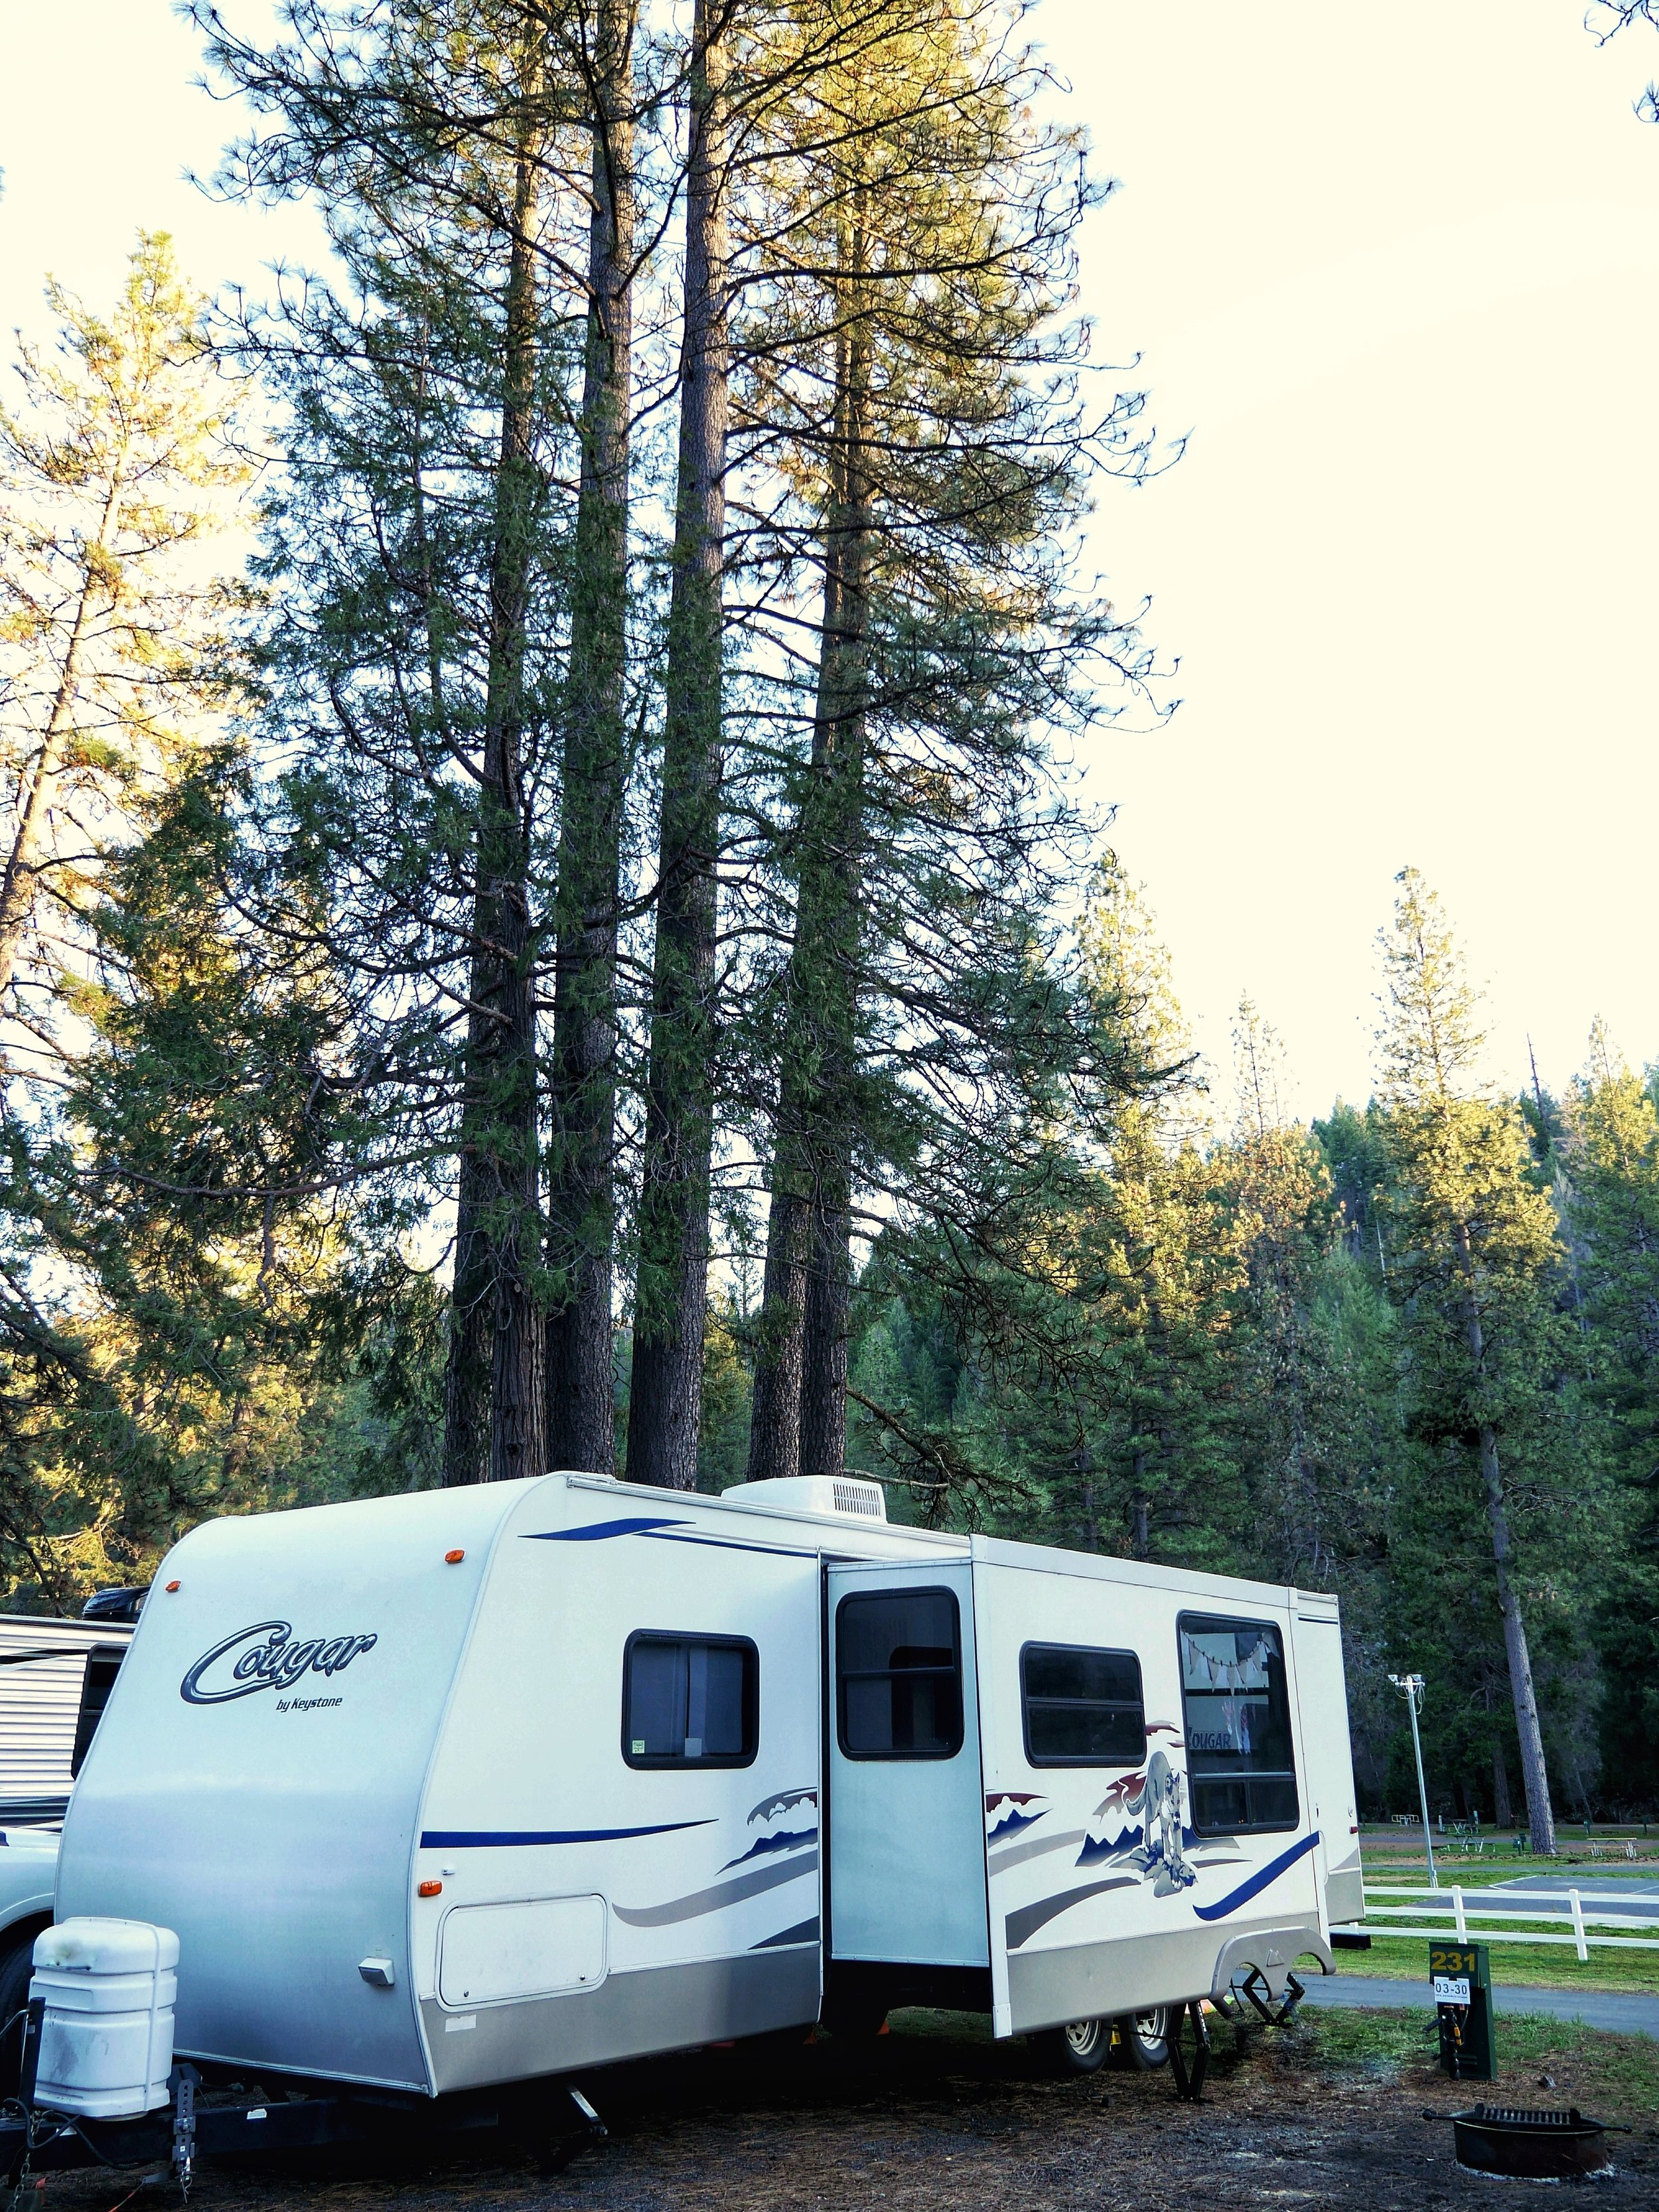 Where to Park it - Read reviews of campgrounds, gather information about campground memberships, and learn boondocking basics from those with experience